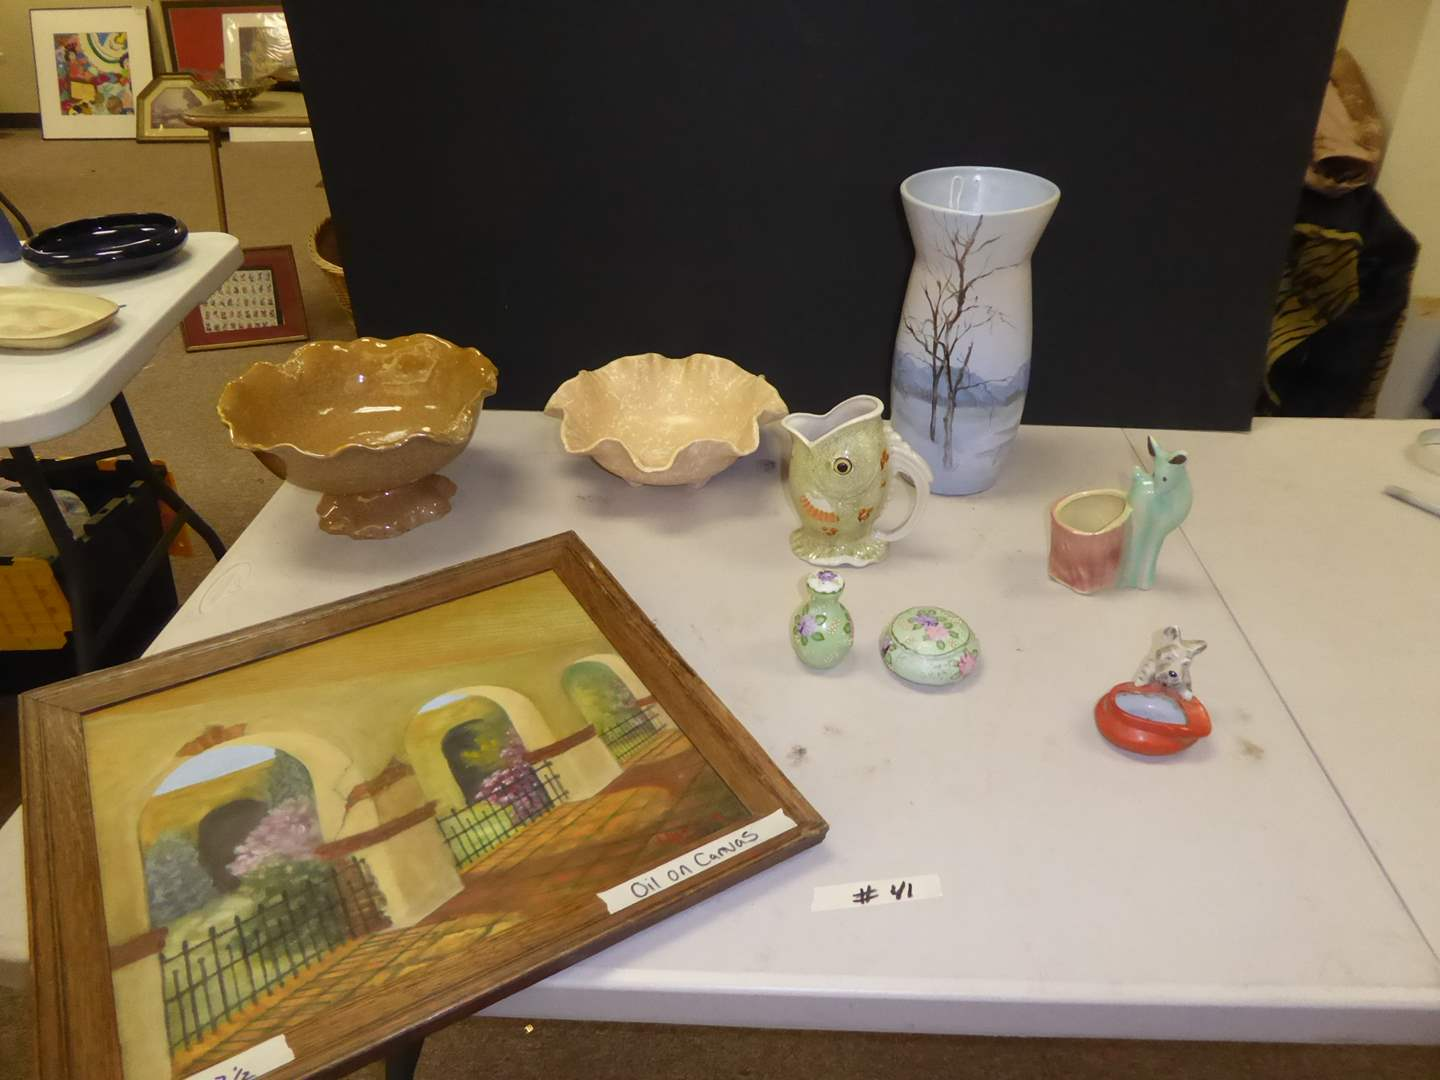 Lot # 41 - Framed Oil On Canvas, Shawnee Bowl, Rozart Scenic Pottery Vase & More (main image)